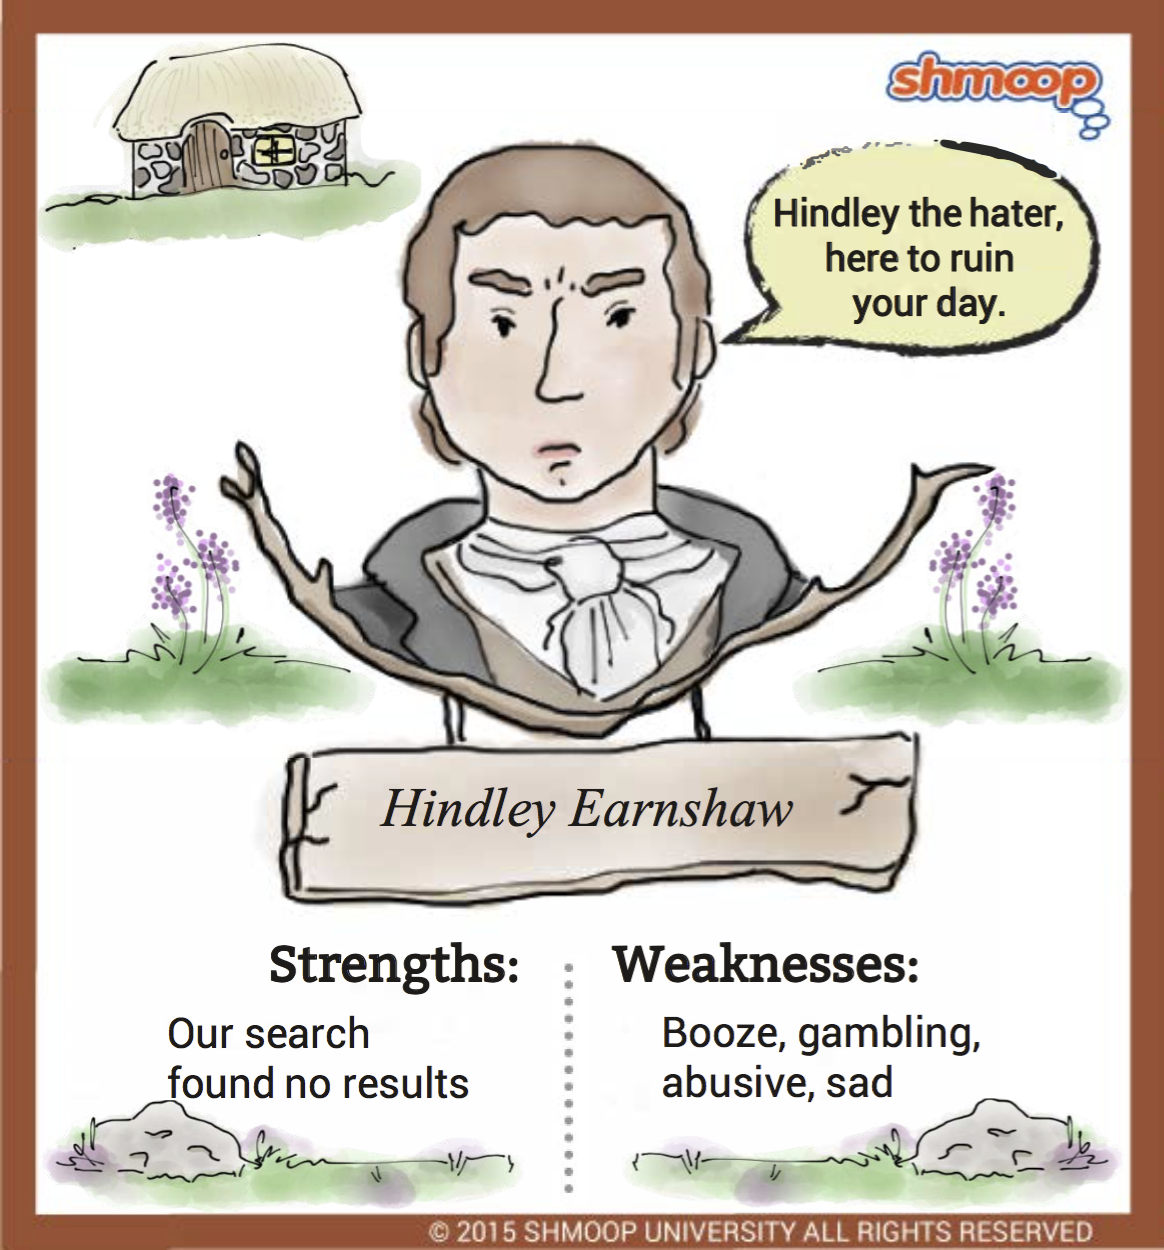 wuthering heights character analysis Catherine is just as rebellious as she is adorable however, she remains torn between two in her life and death learn more from this character analysis.